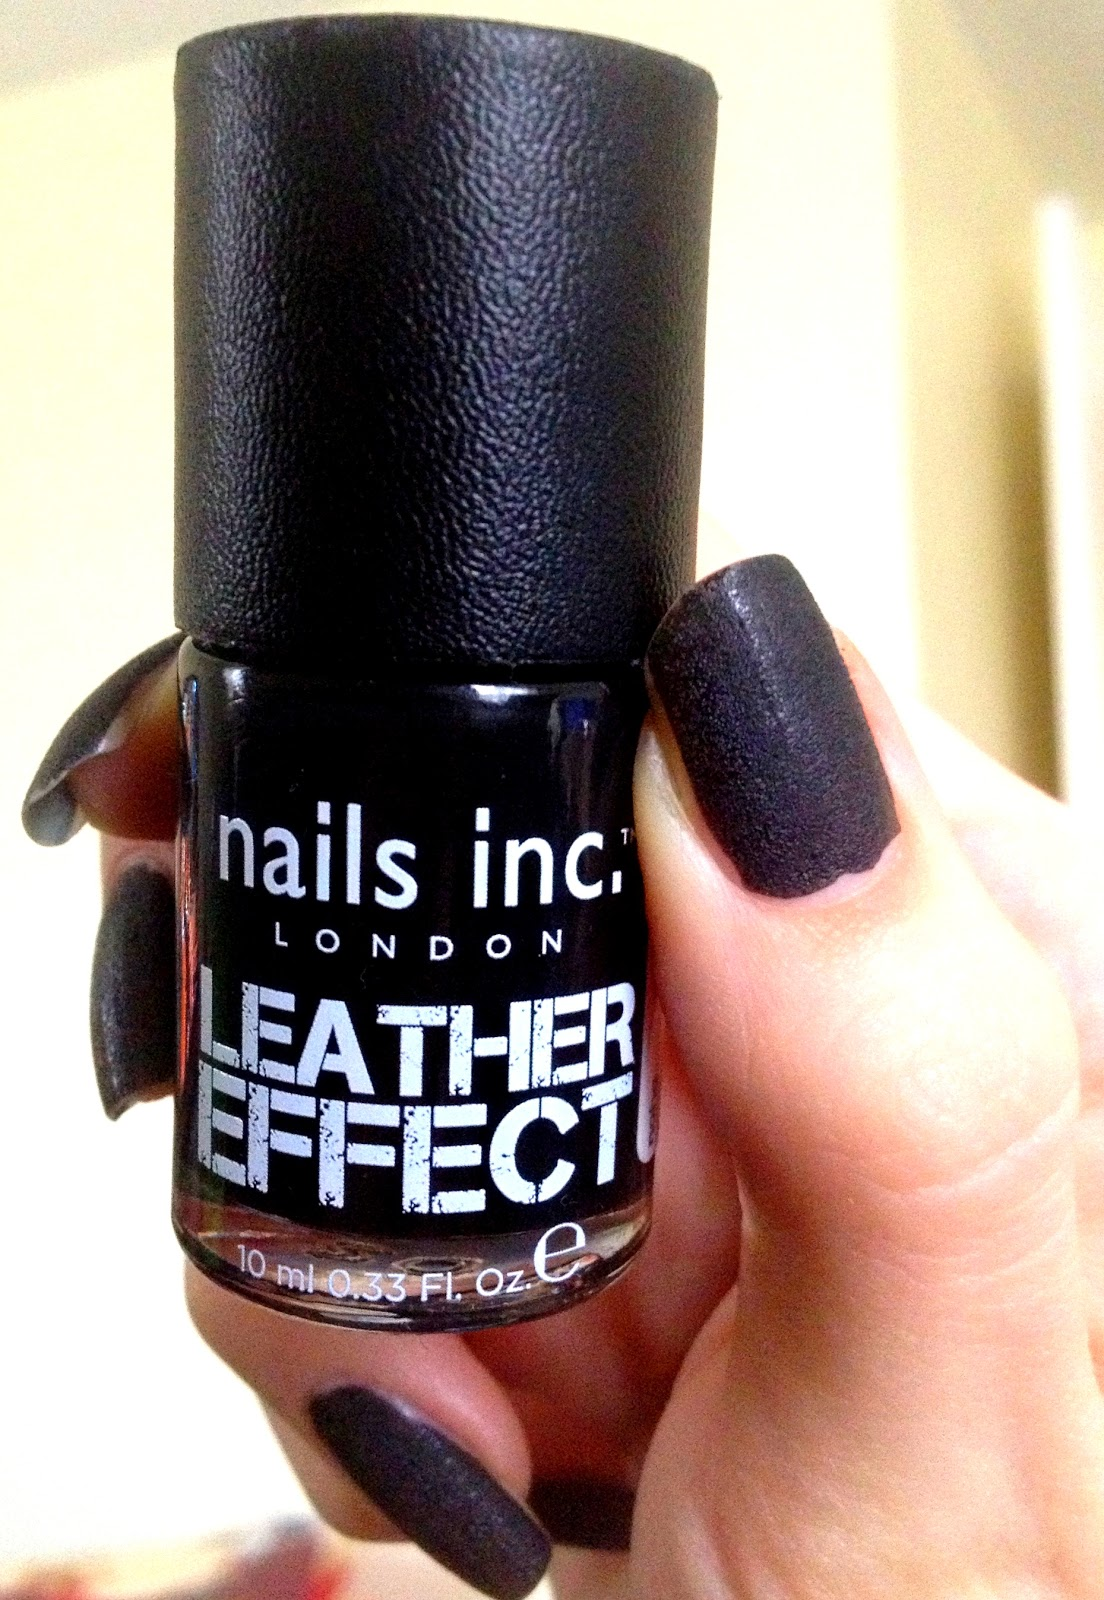 Photo -Jenn- ic: Nails Inc Leather Effect Review